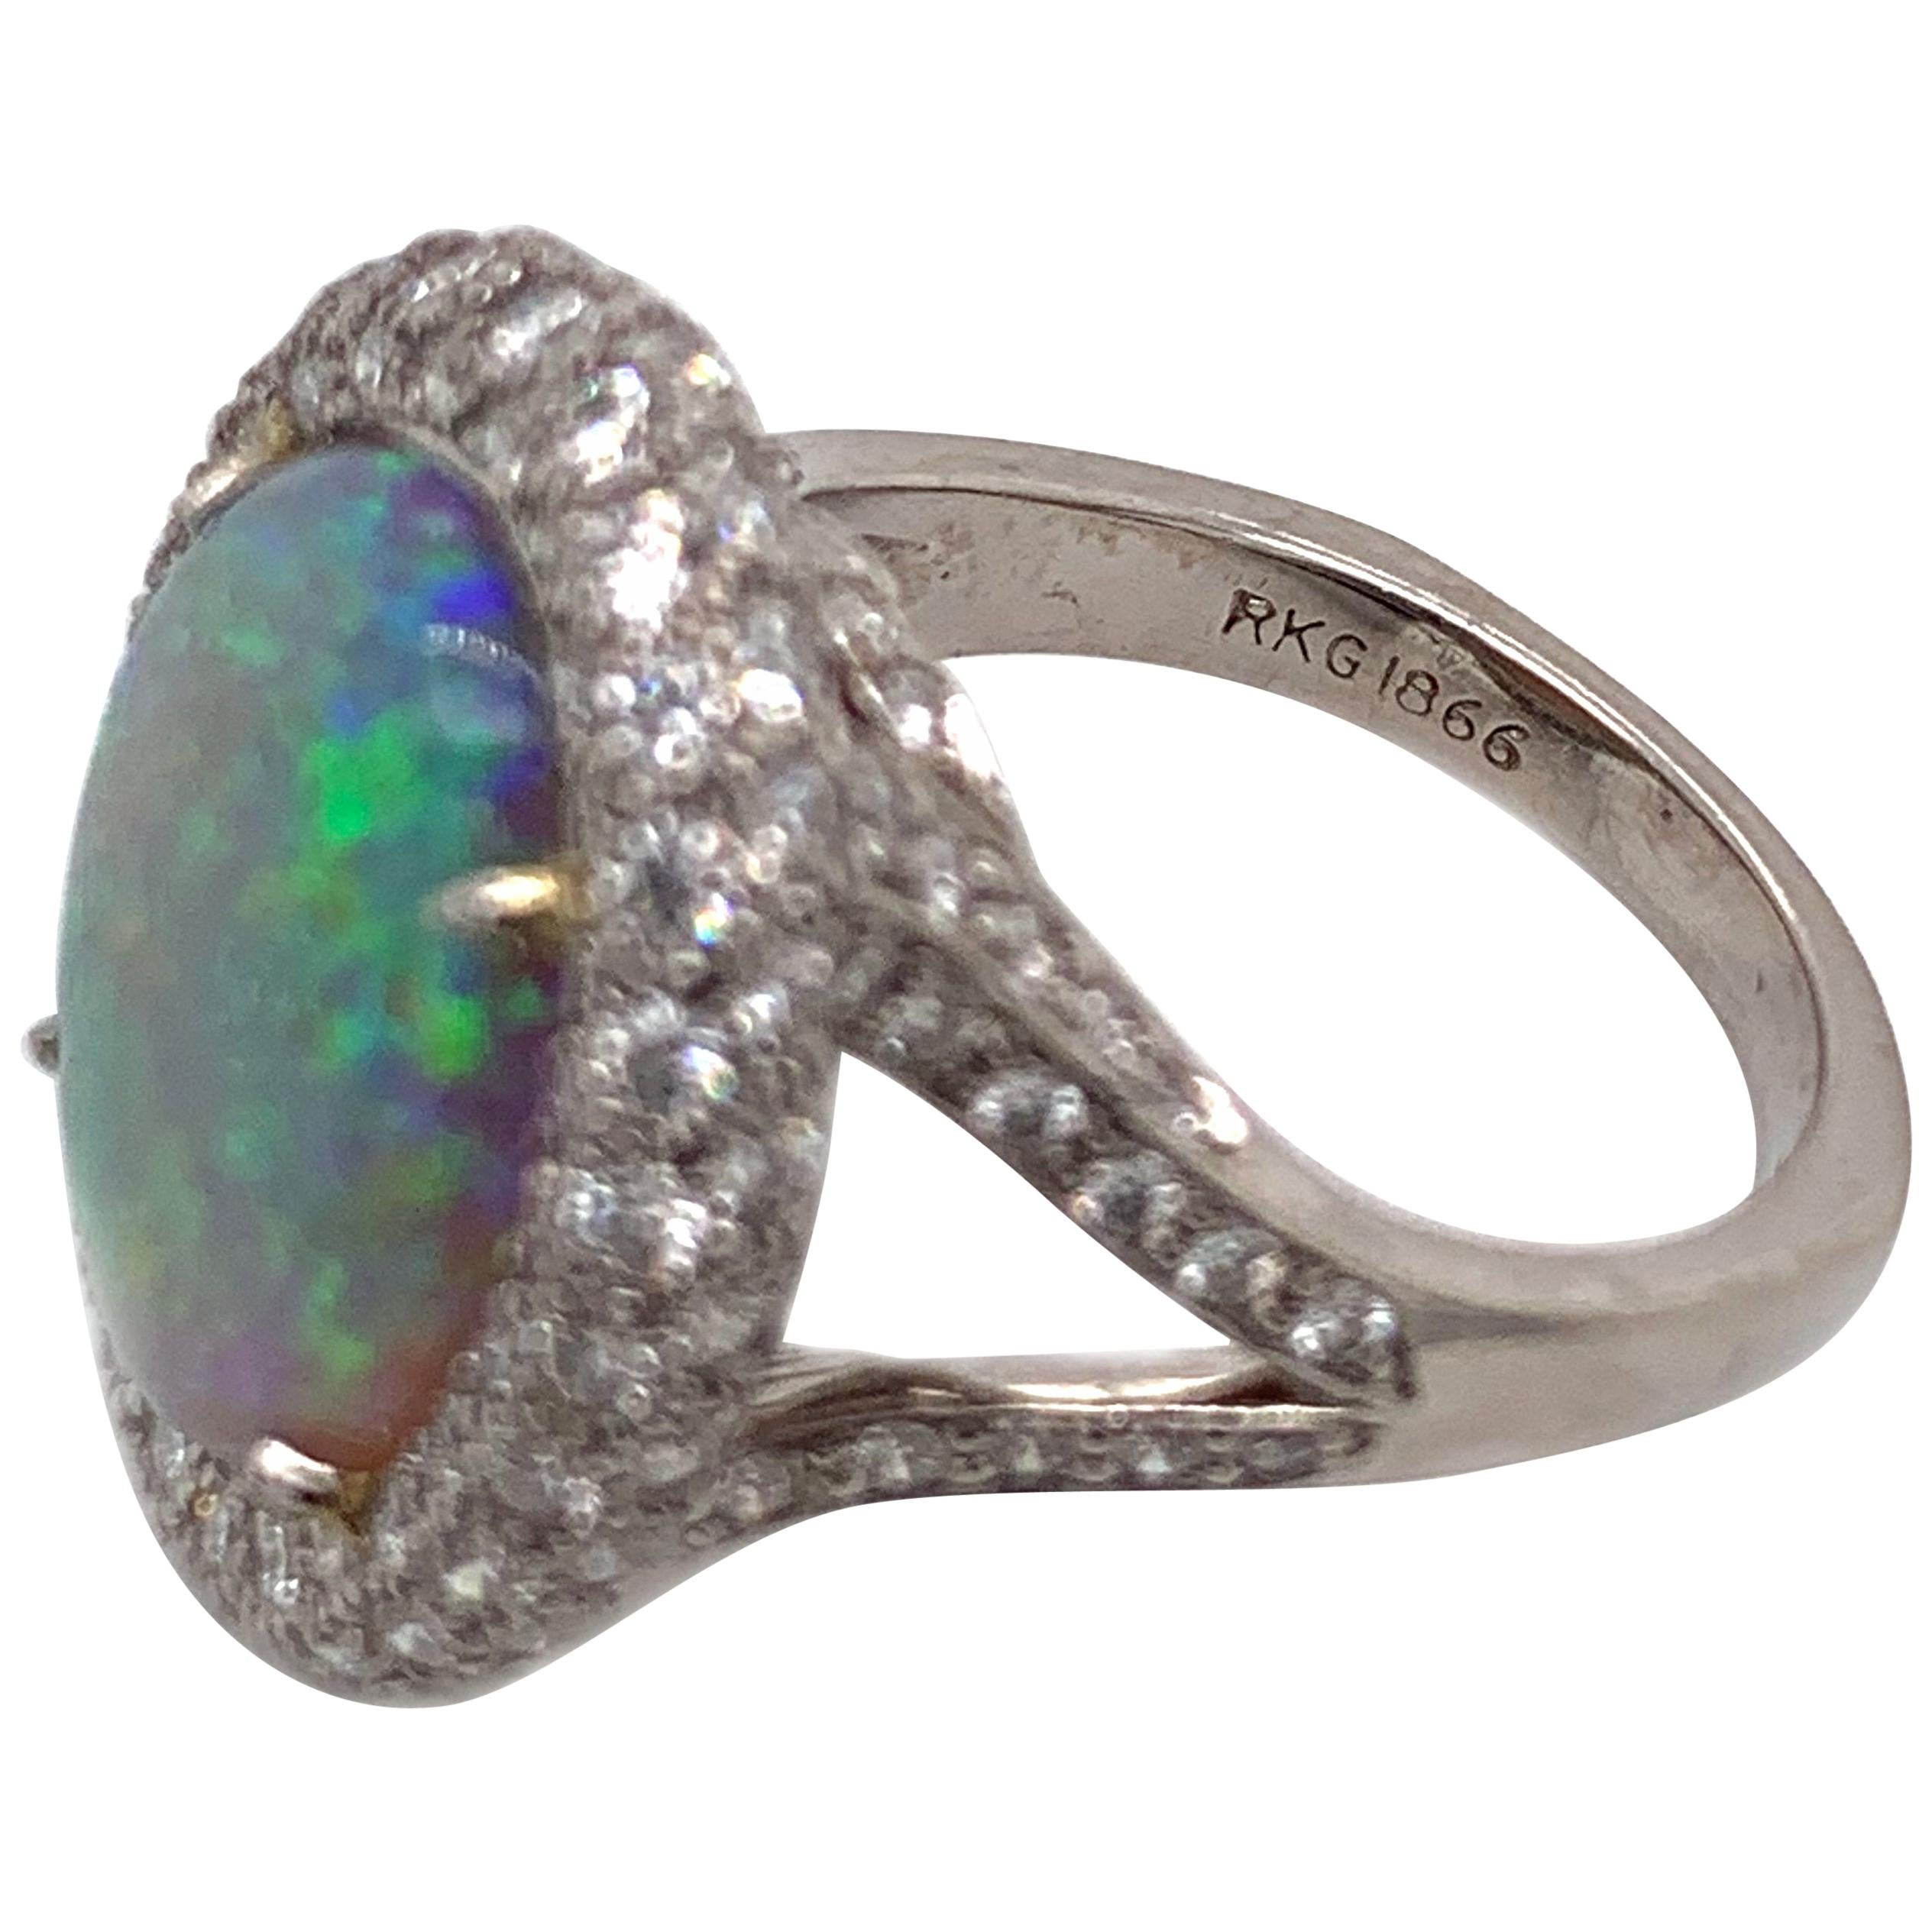 Certified Platinum Opal and Diamond Ring